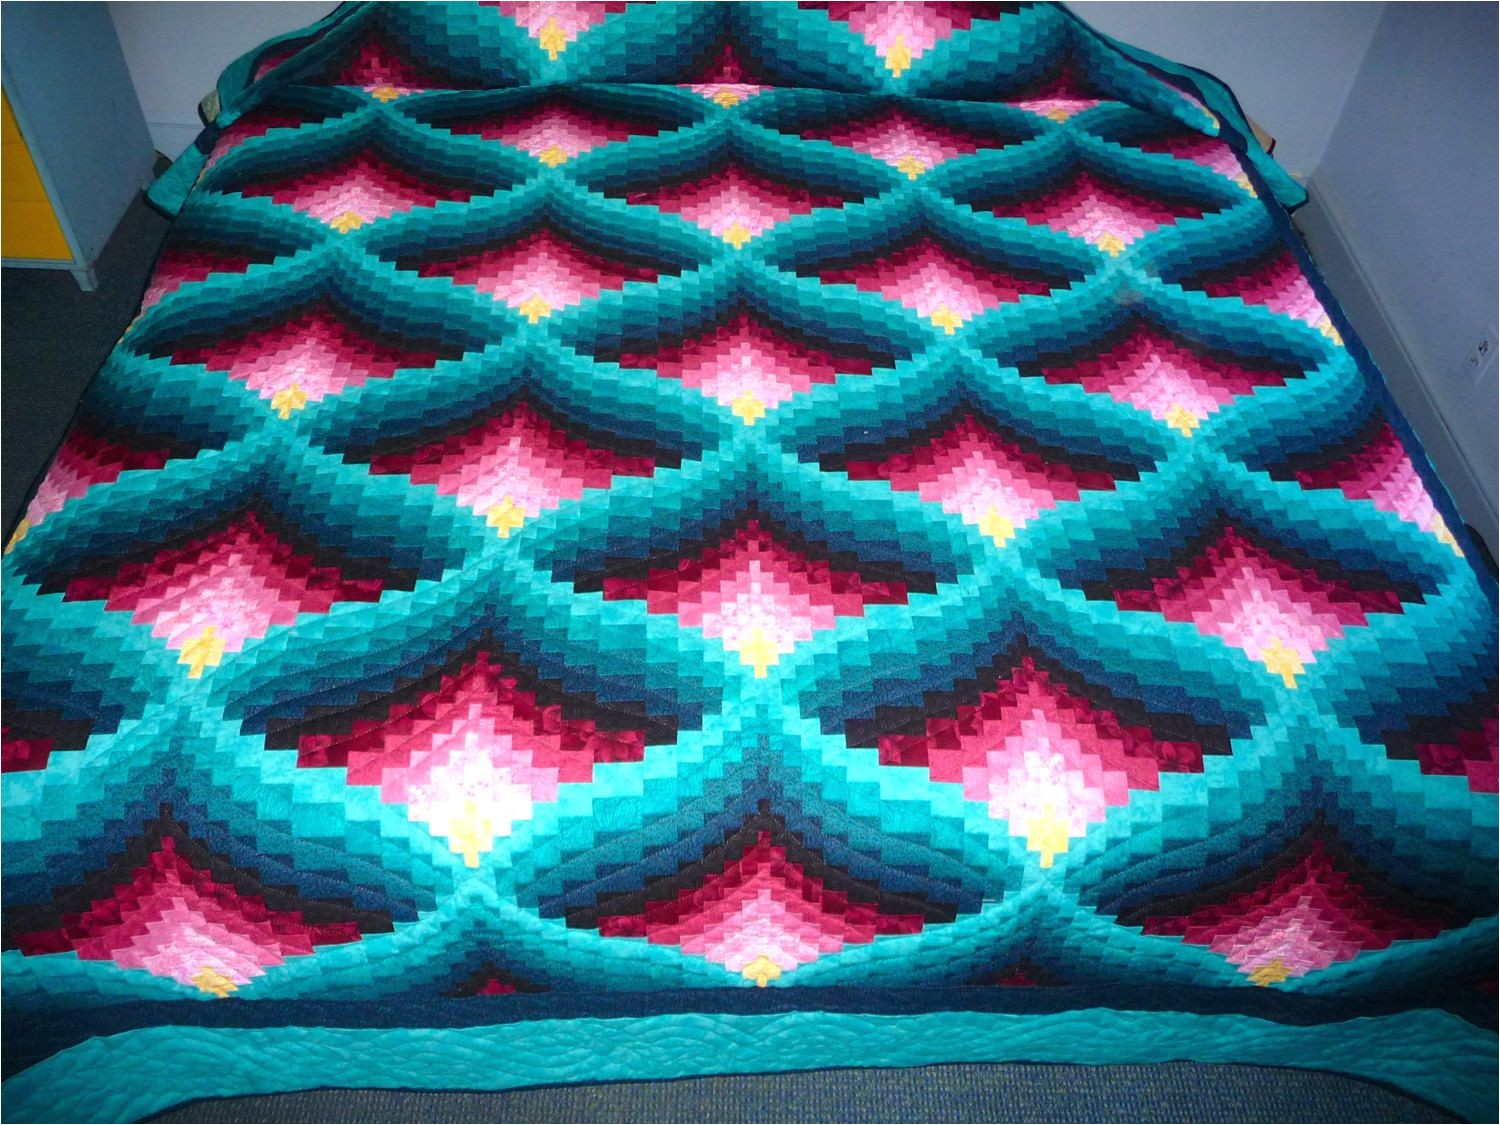 Amish Light In the Valley Quilt Pattern Amish Quilt Light In the Valley Pattern New Teal Green